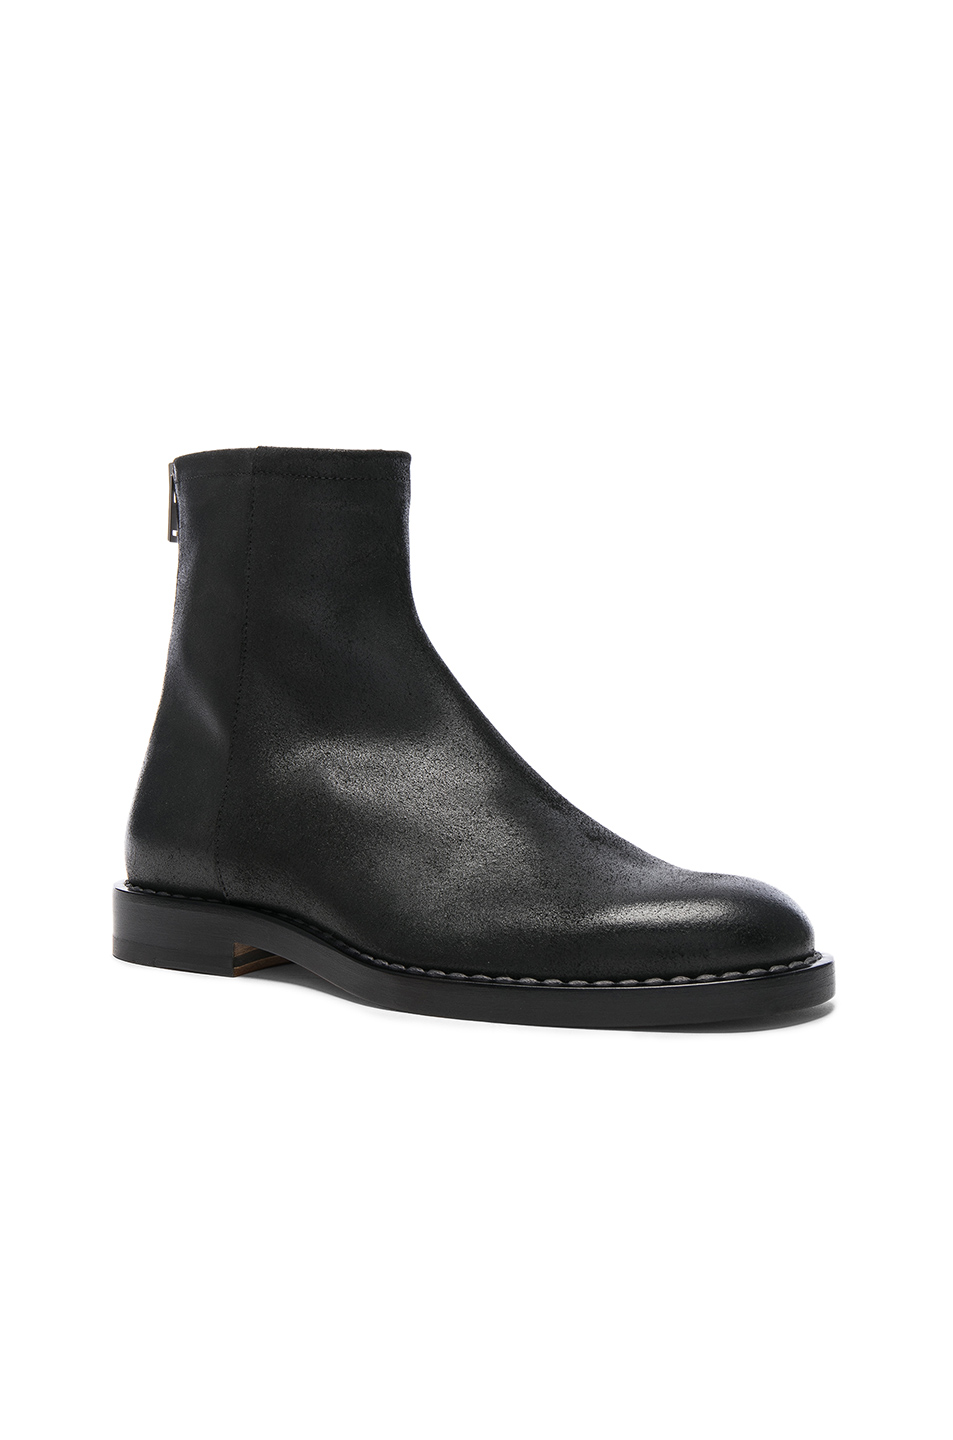 Maison Margiela Leather Light Brushed Effect Boots in Black